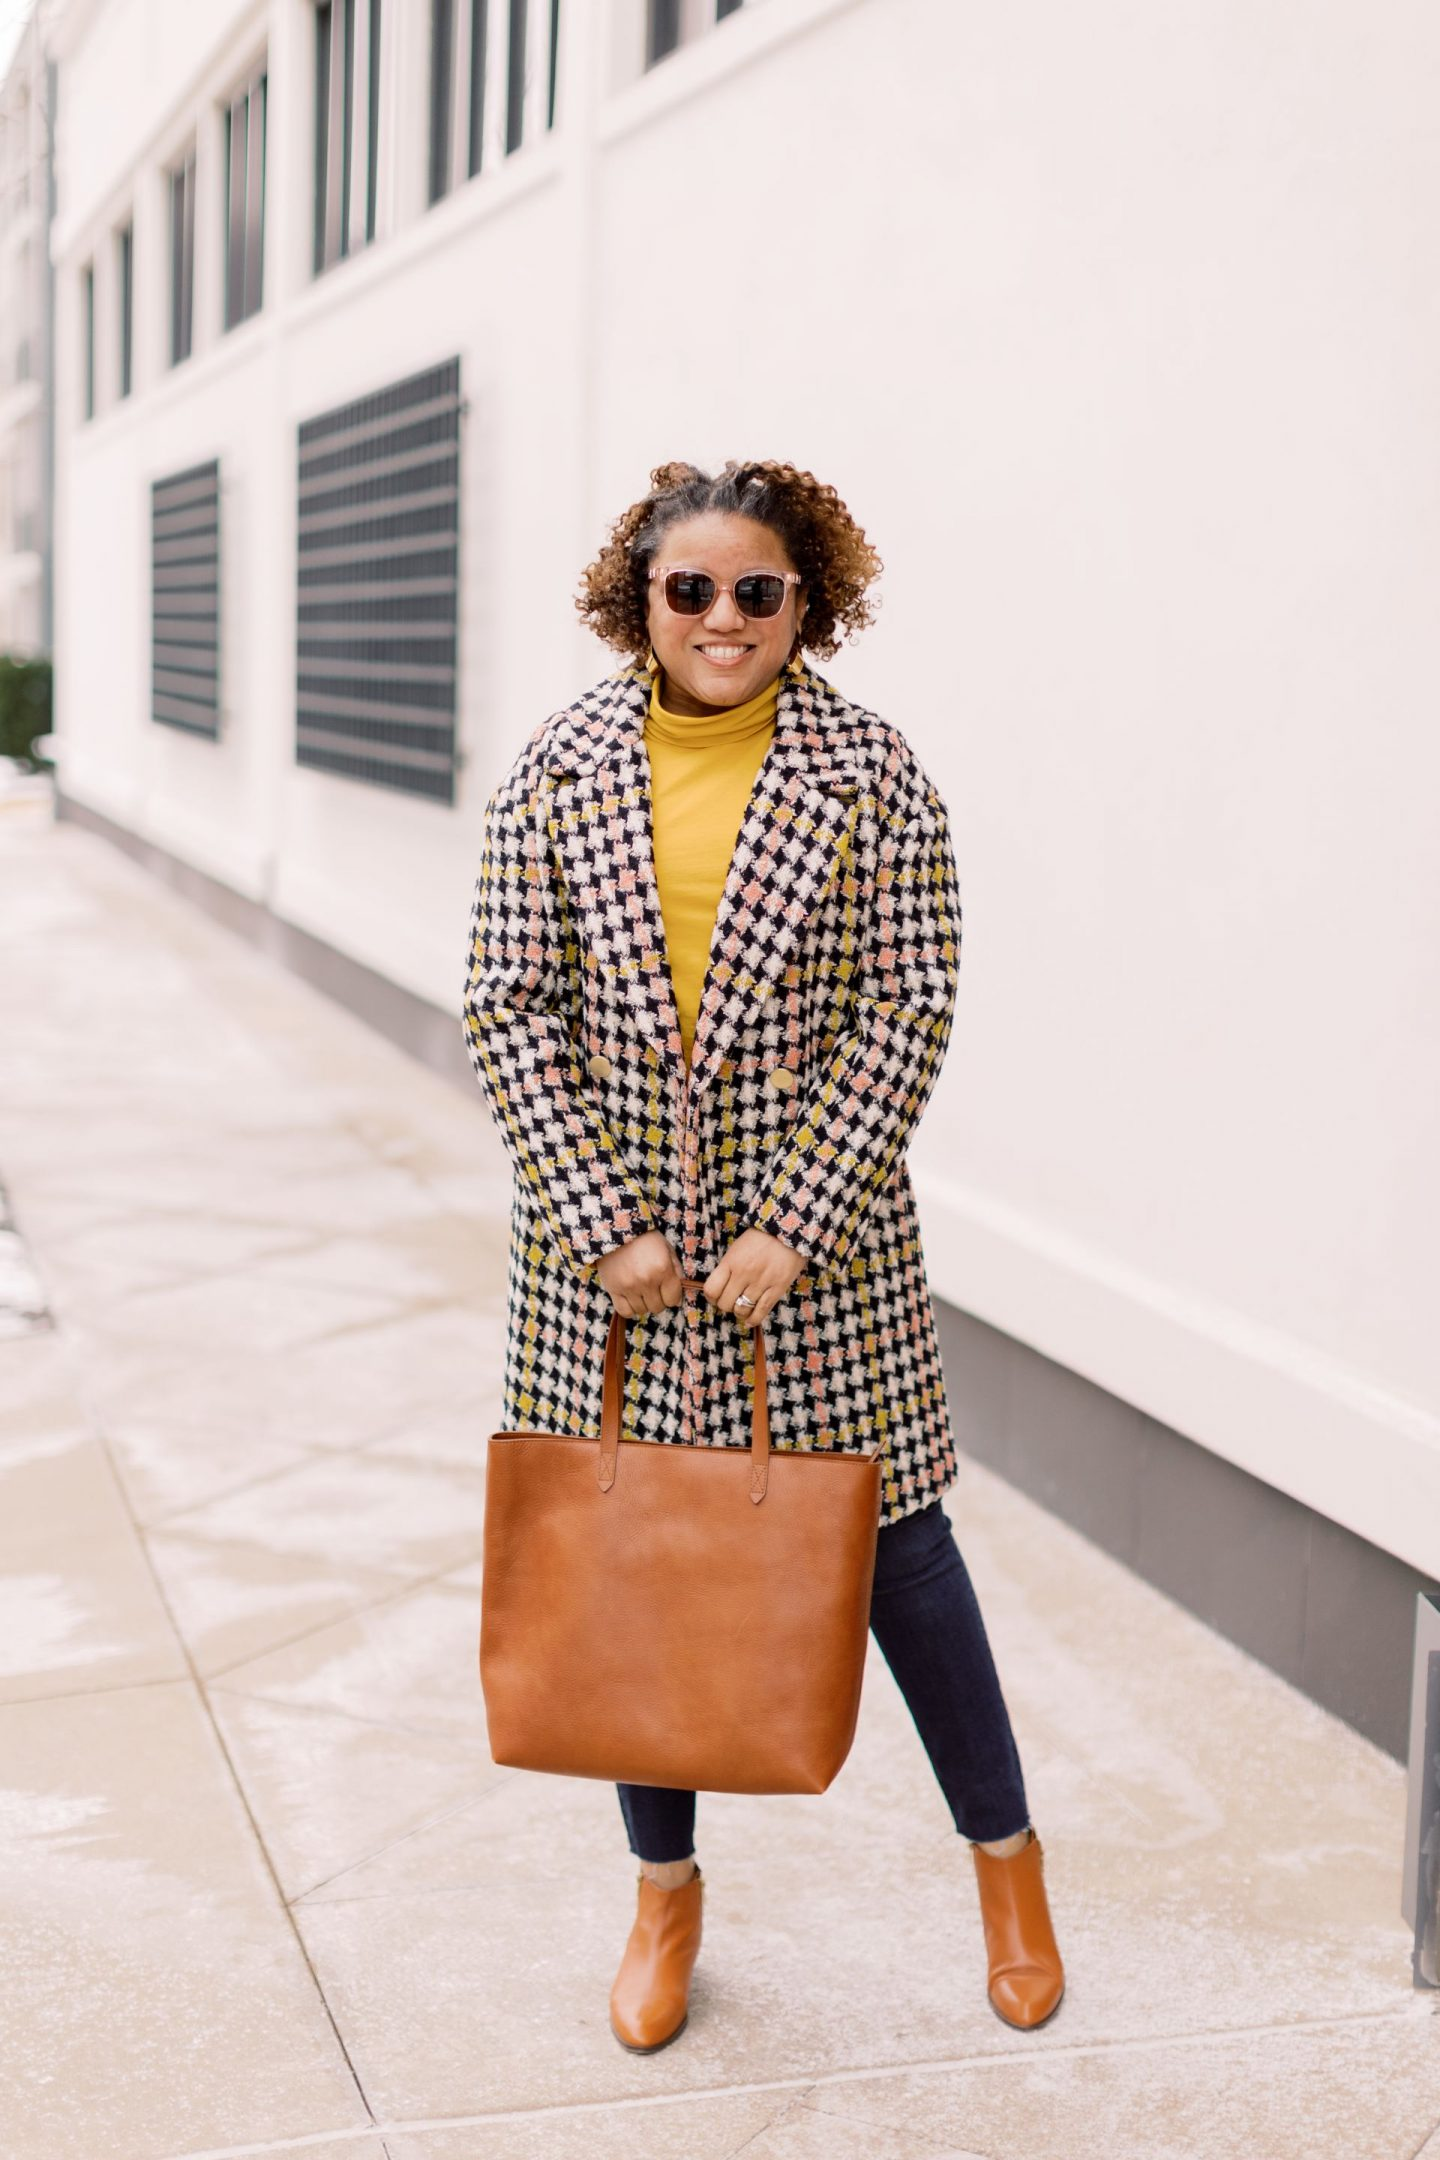 Cute Coats by popular Kentucky fashion blog, Really Rynetta: image of a woman wearing a J. Crew Tissue Turtleneck, gold statement earrings, sunglasses, skinny jeans, brown ankle boots, and a black, white, pink and yellow houndstooth coat.